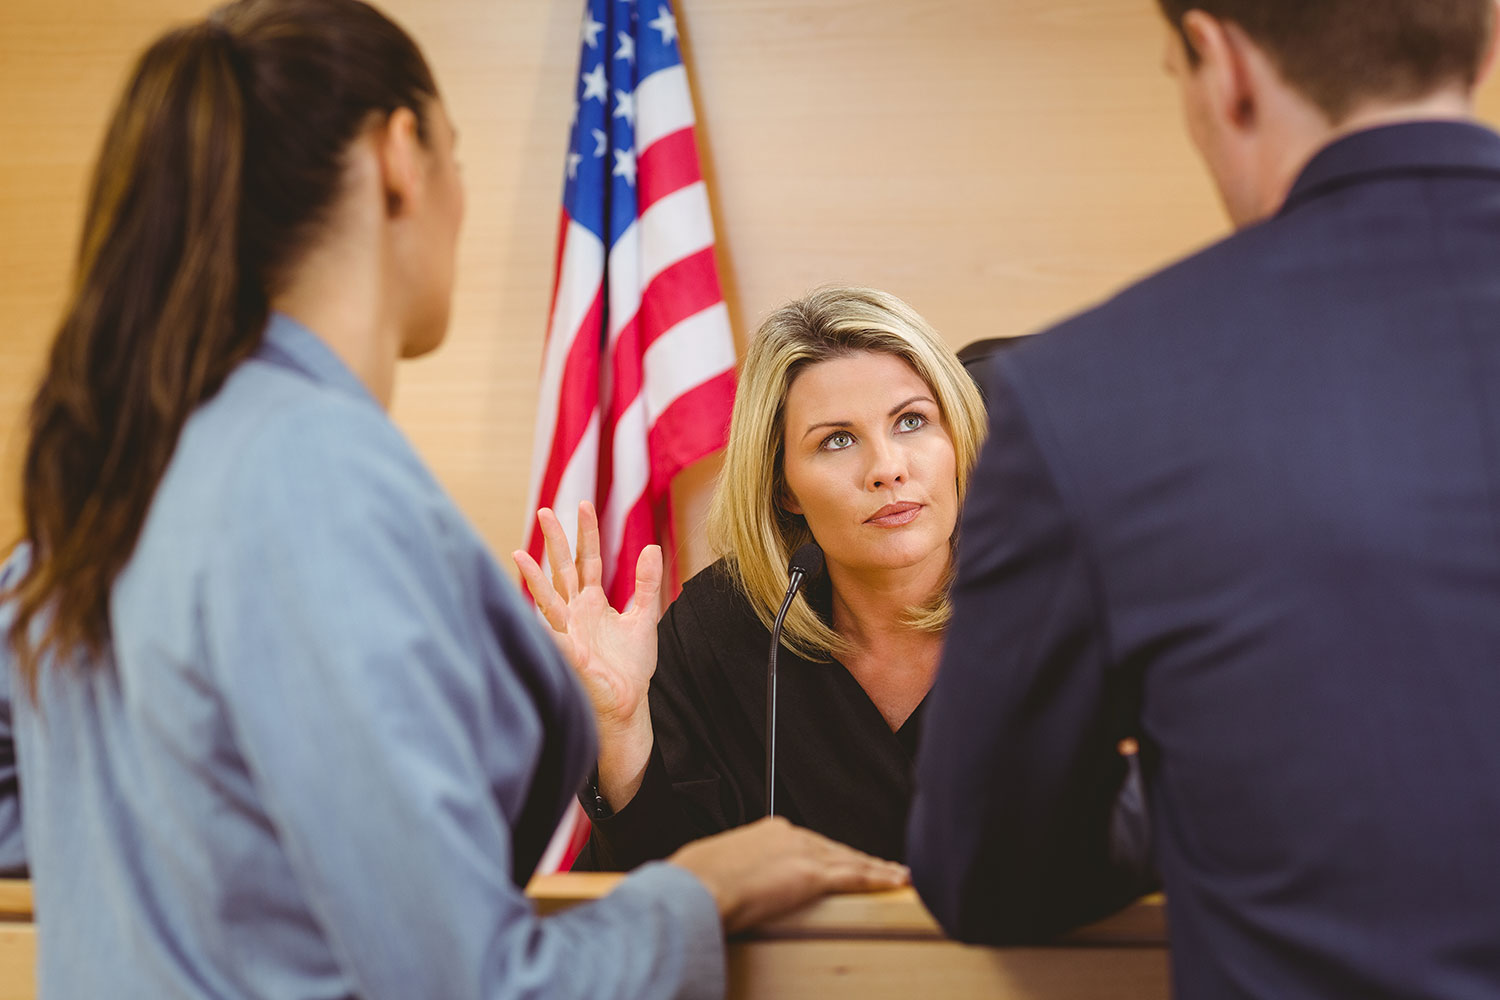 Will A Lawyer Be Provided To Me For My Removal (Deportation) Hearing In Immigration Court?